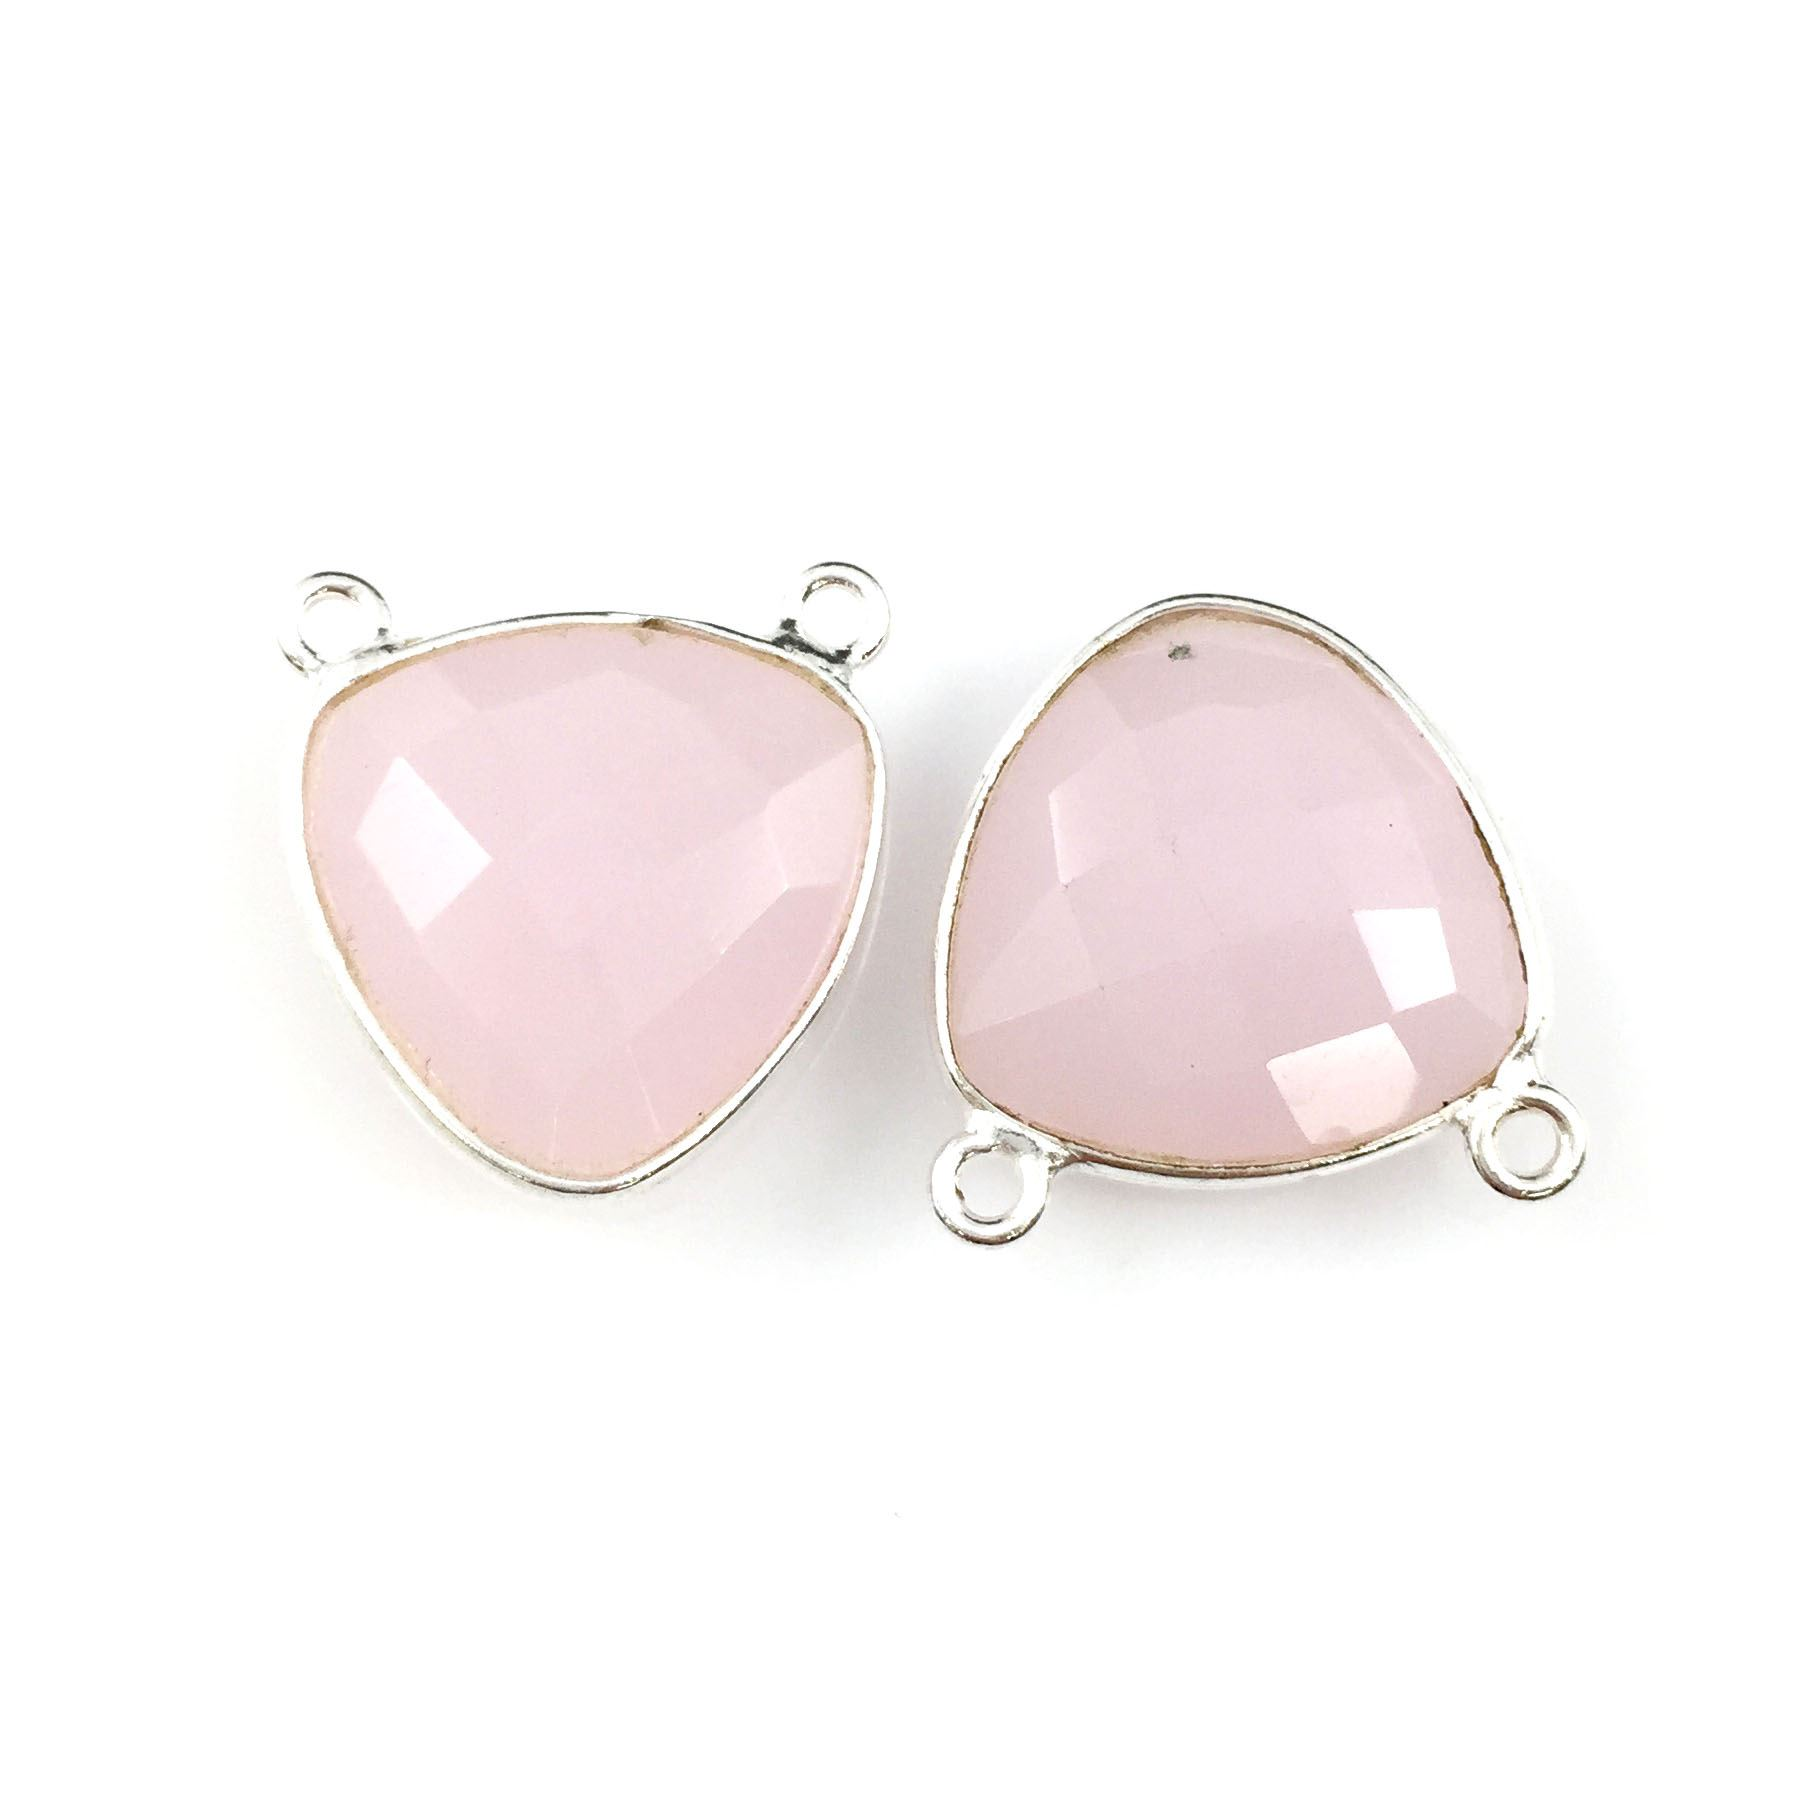 Bezel Gemstone Connector Pendant - Pink Chalcedony- Sterling Silver - Small Trillion Shaped Faceted - 15mm - 1 piece